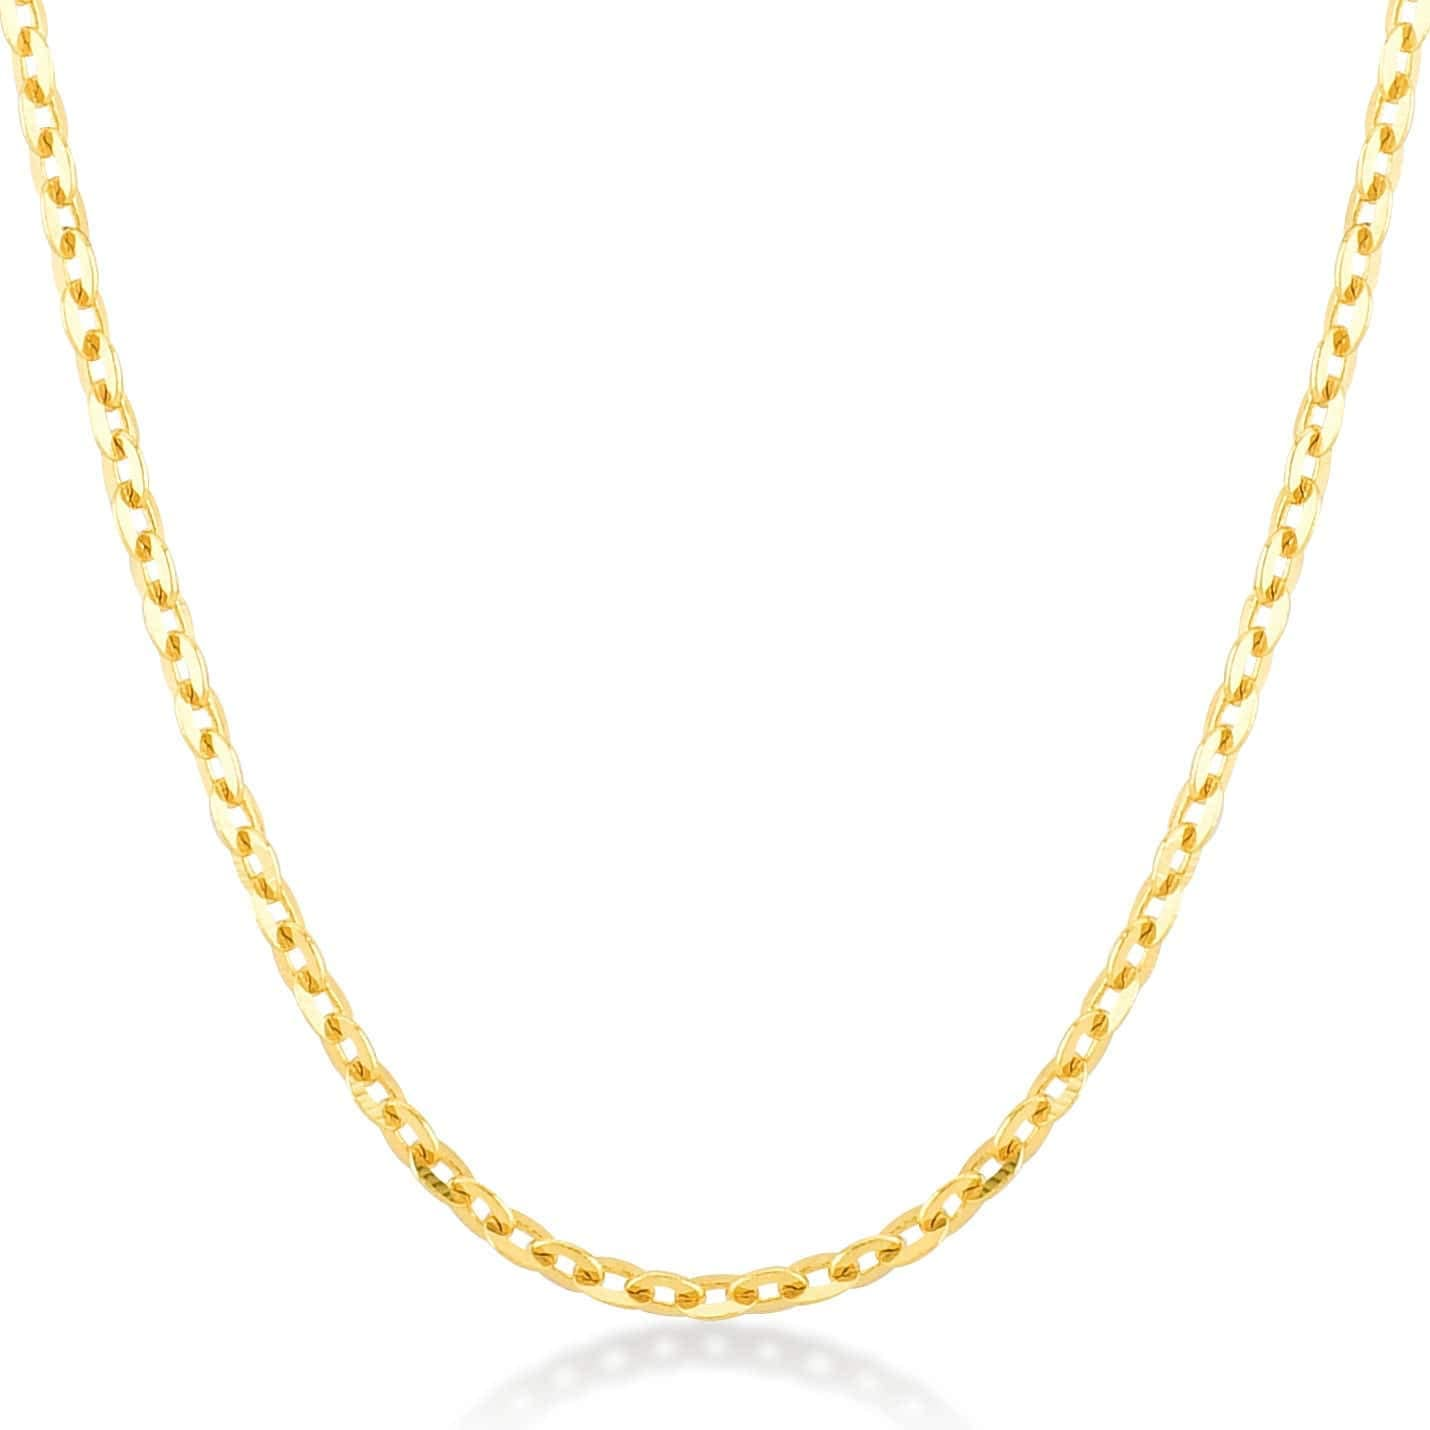 Gelin 14k White Gold 1.0 mm Forzentina Cable Chain for Women and Men,18